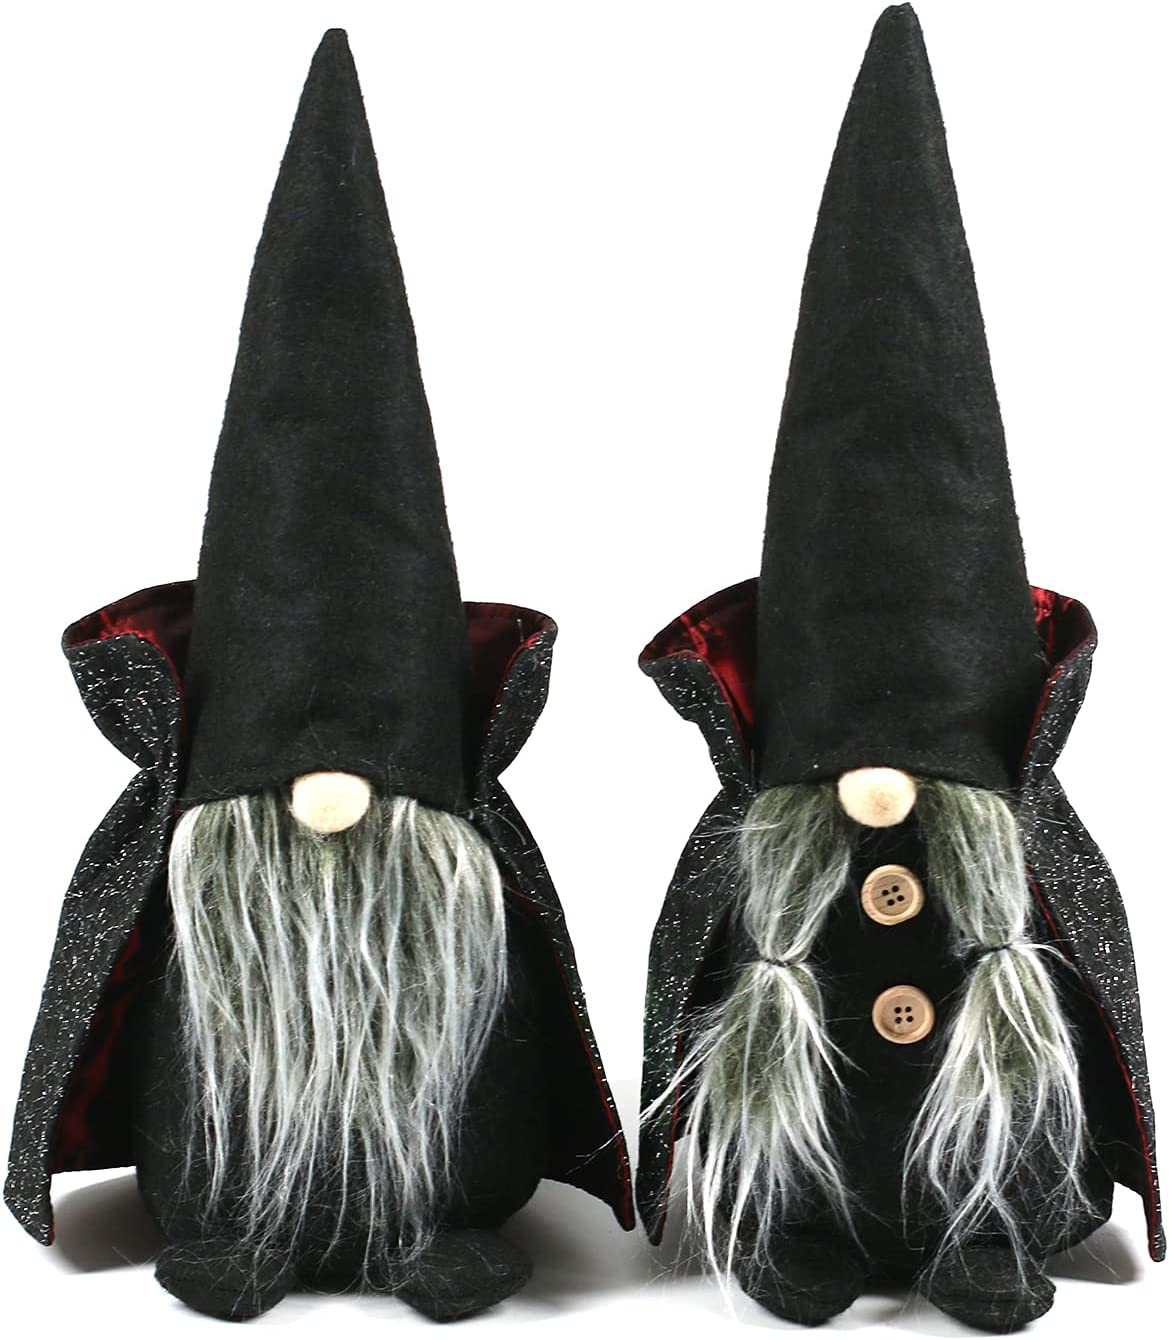 Ogrmar 2 Pack 15.4 Inch Halloween Gnomes Plush Doll Decor Handmade Nisse Scandinavian Gnomes Tomte Swedish Gnome with Black Hat Cloak for Halloween Home Tabletop Ornaments